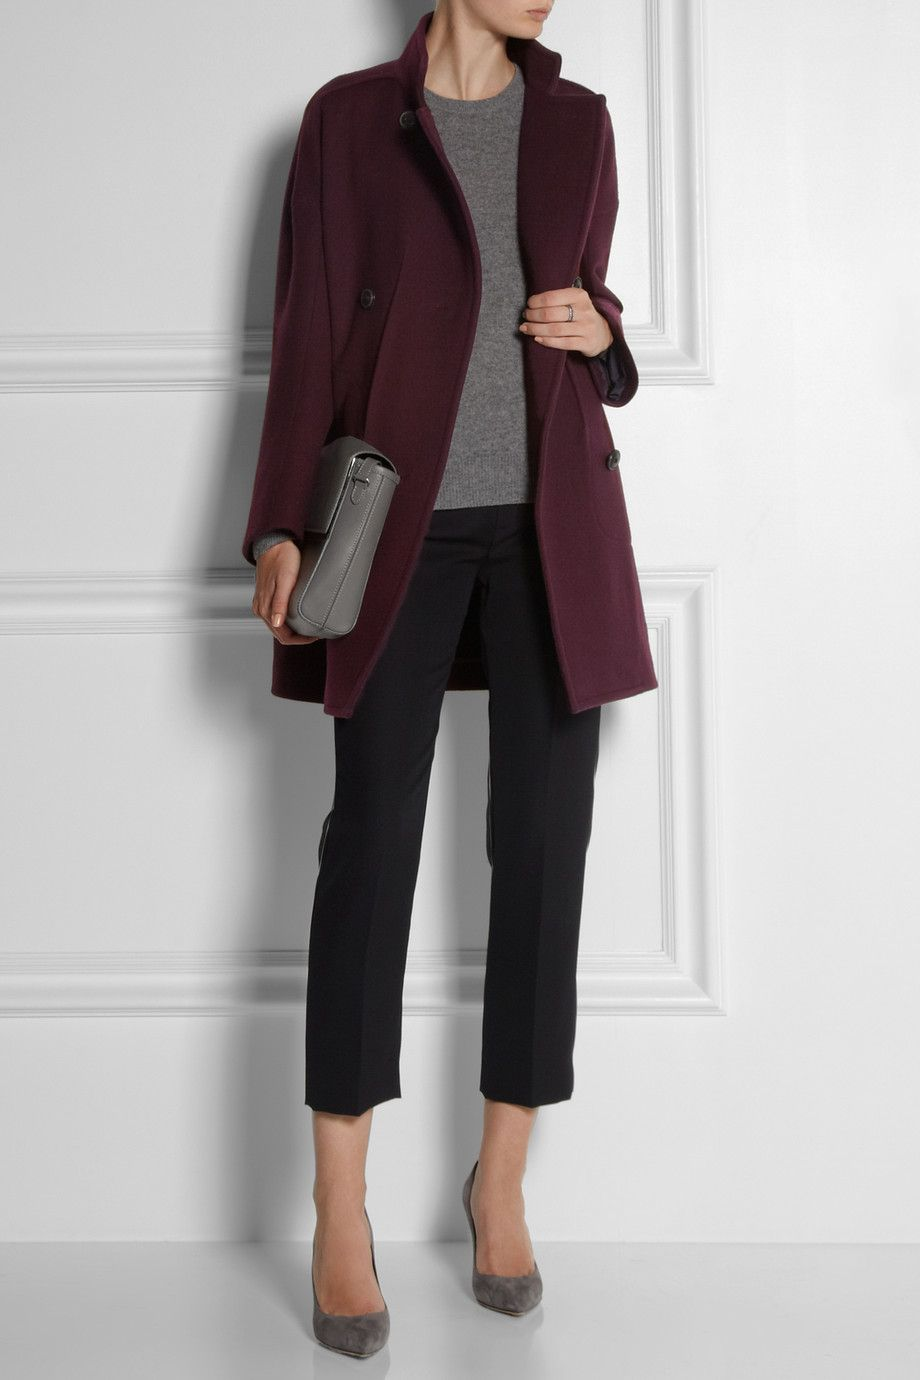 Burgundy Wool Coat From Jil Sander Pants Chlou00e9 Heels Gianvito Rossi Top Equipment Bag Maison ...